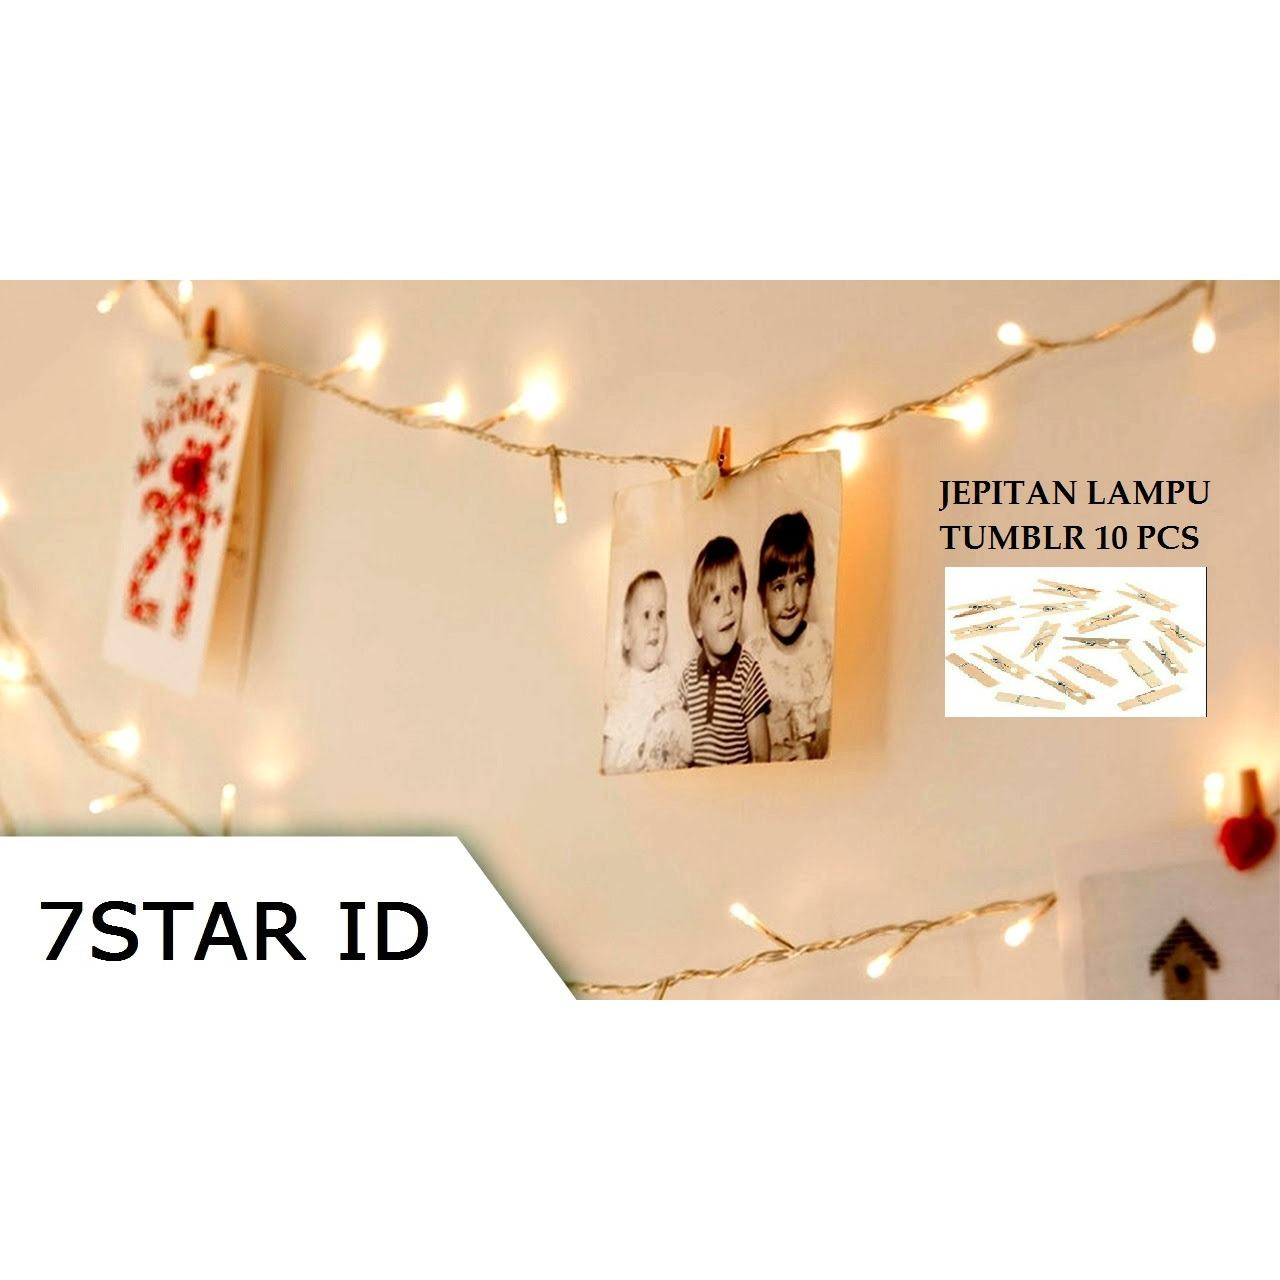 Lampu LED Tumblr/Jepitan Lampu Tumblr ELT N-1031 7STAR Tumblr Natal Twinkle Light 10 Meter FULL + Ada Colokan Sambungan